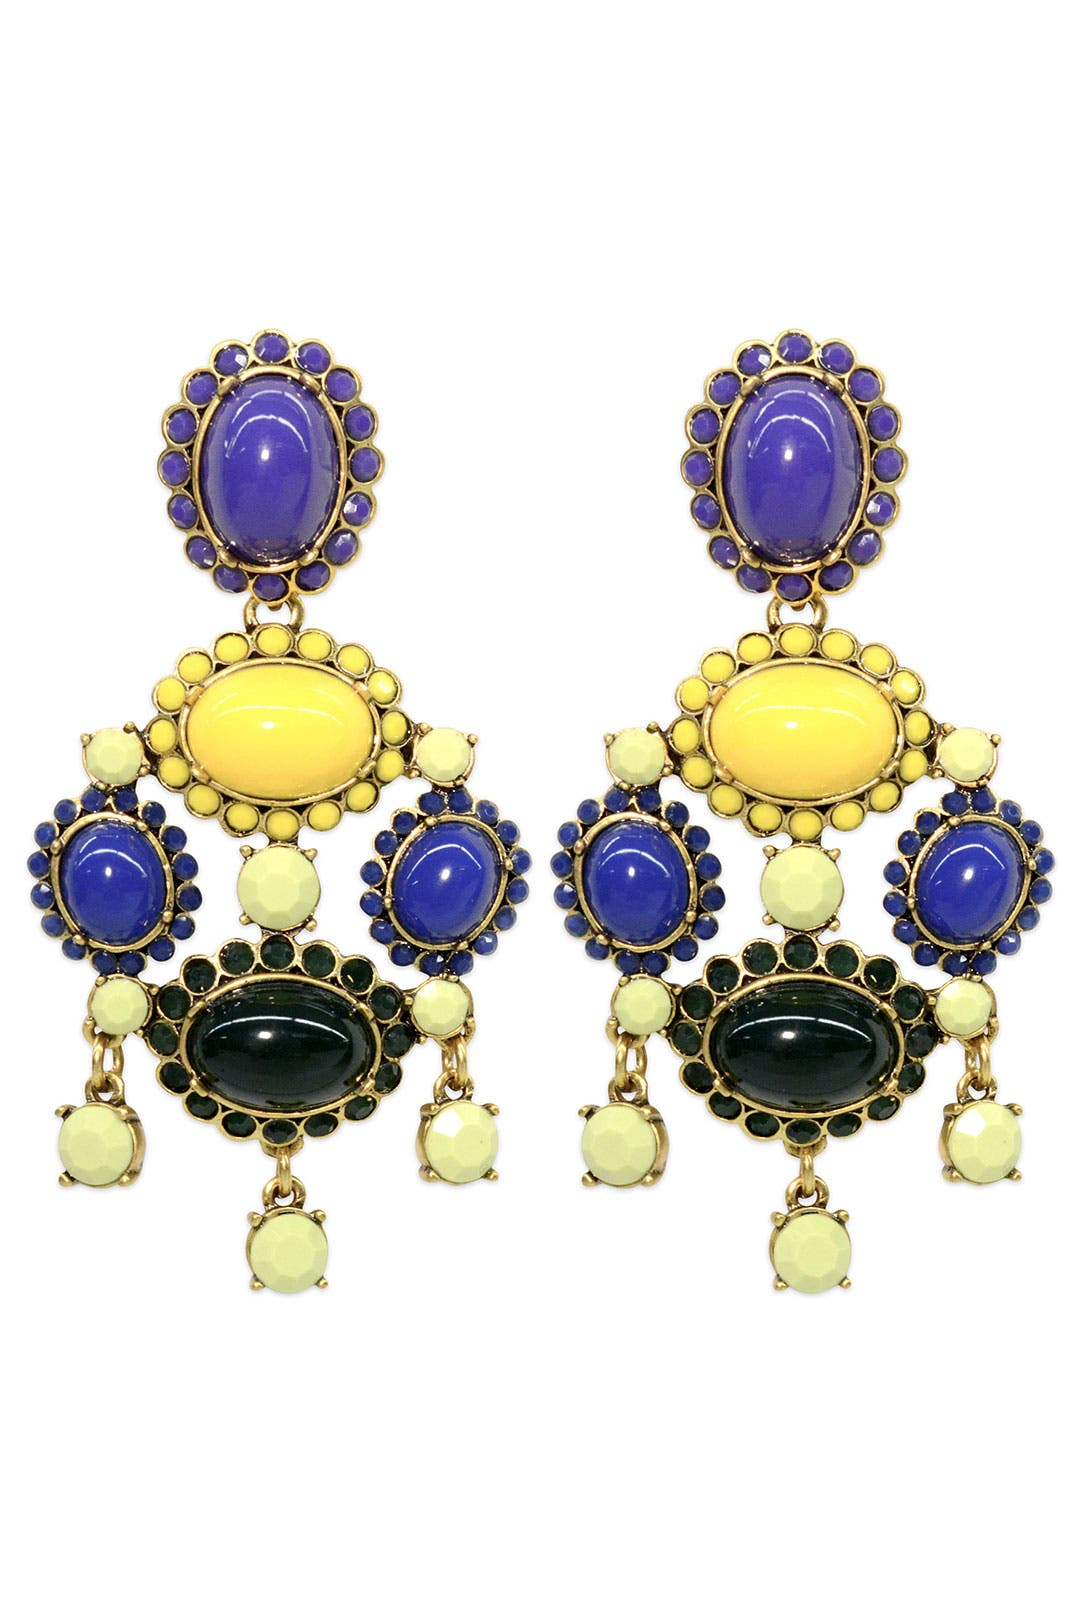 Marrakech Earring by Oscar de la Renta